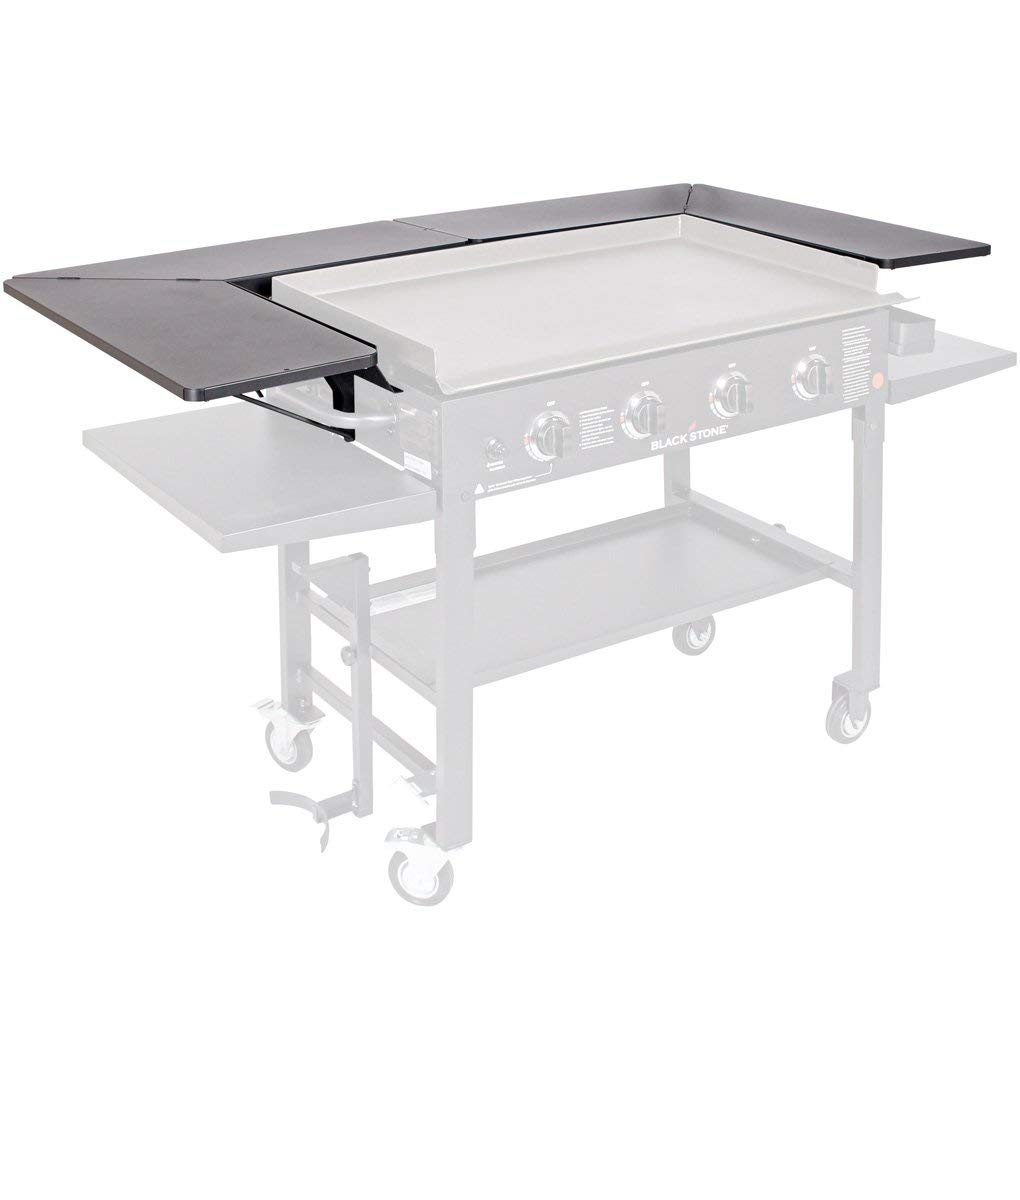 Blackstone Signature Accessories - 36 Inch Griddle Surround Table Accessory - Powder Coated Steel (Grill not included and Doesnt fit the 36in Griddle with New Rear Grease Model) (Renewed) by Blackstone